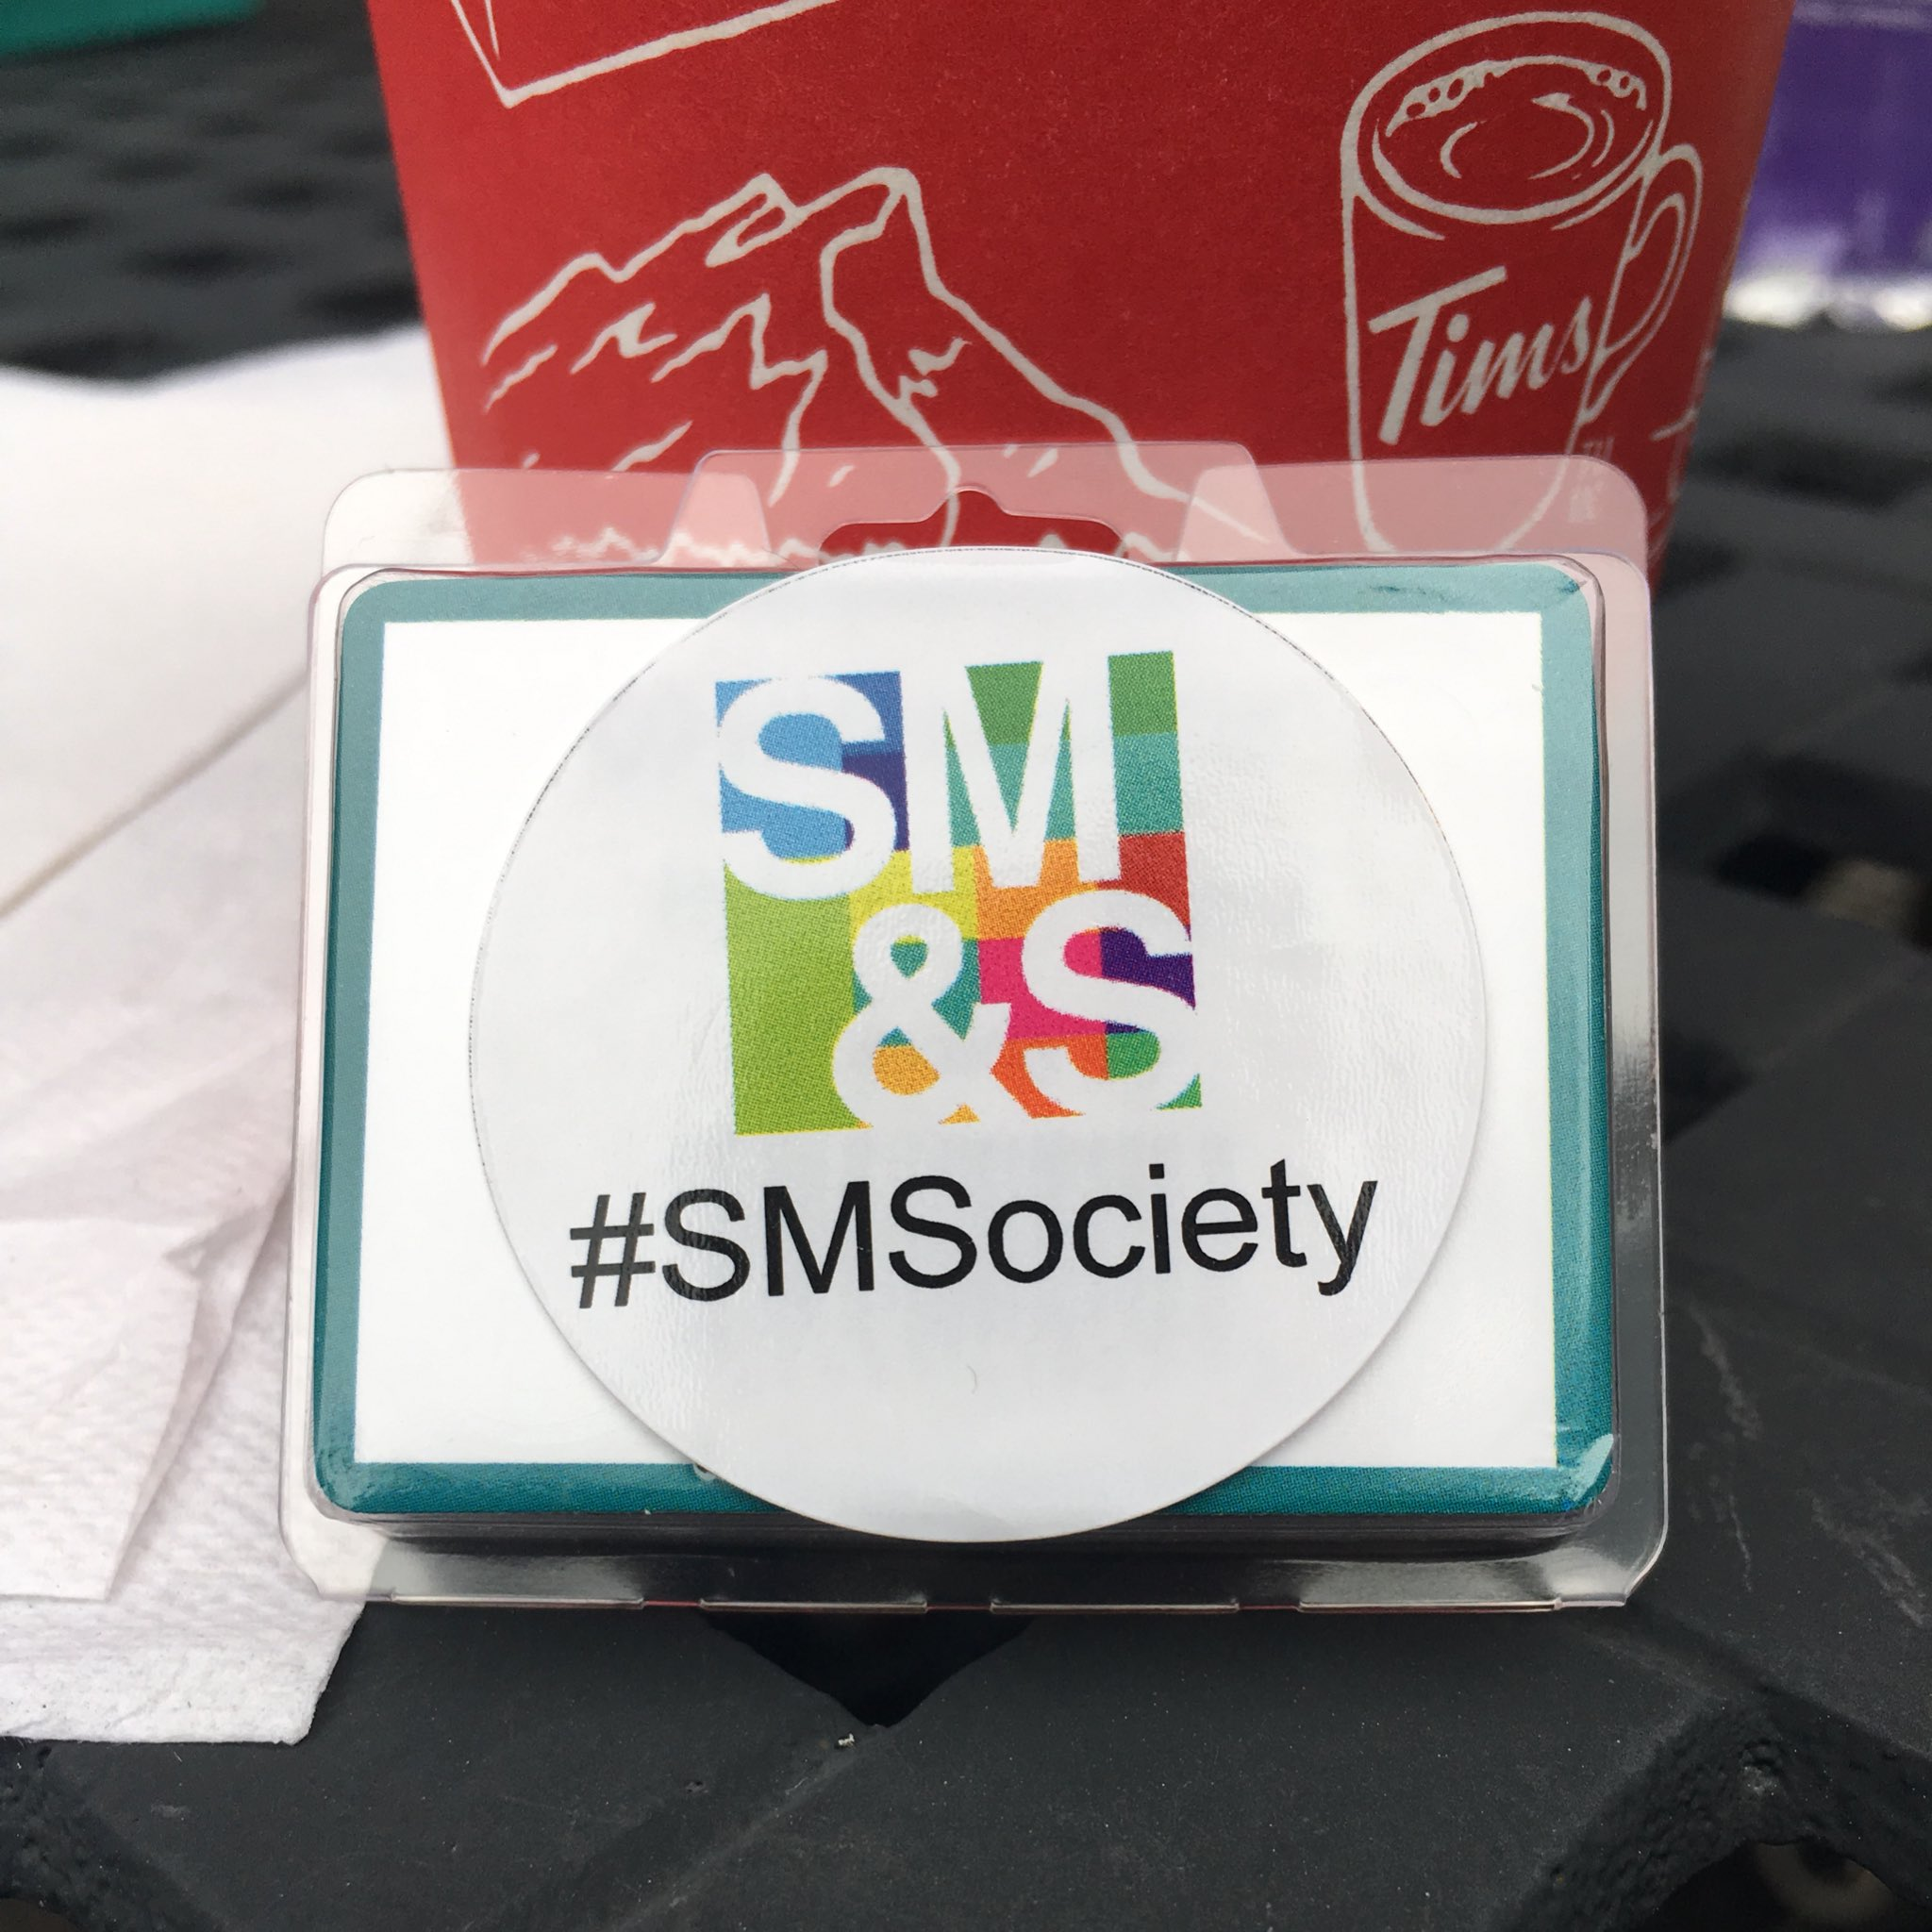 Opened the bag and found the surprise but not revealing it for others 😉 #SMSociety #awesome https://t.co/rGwzu3XzB8